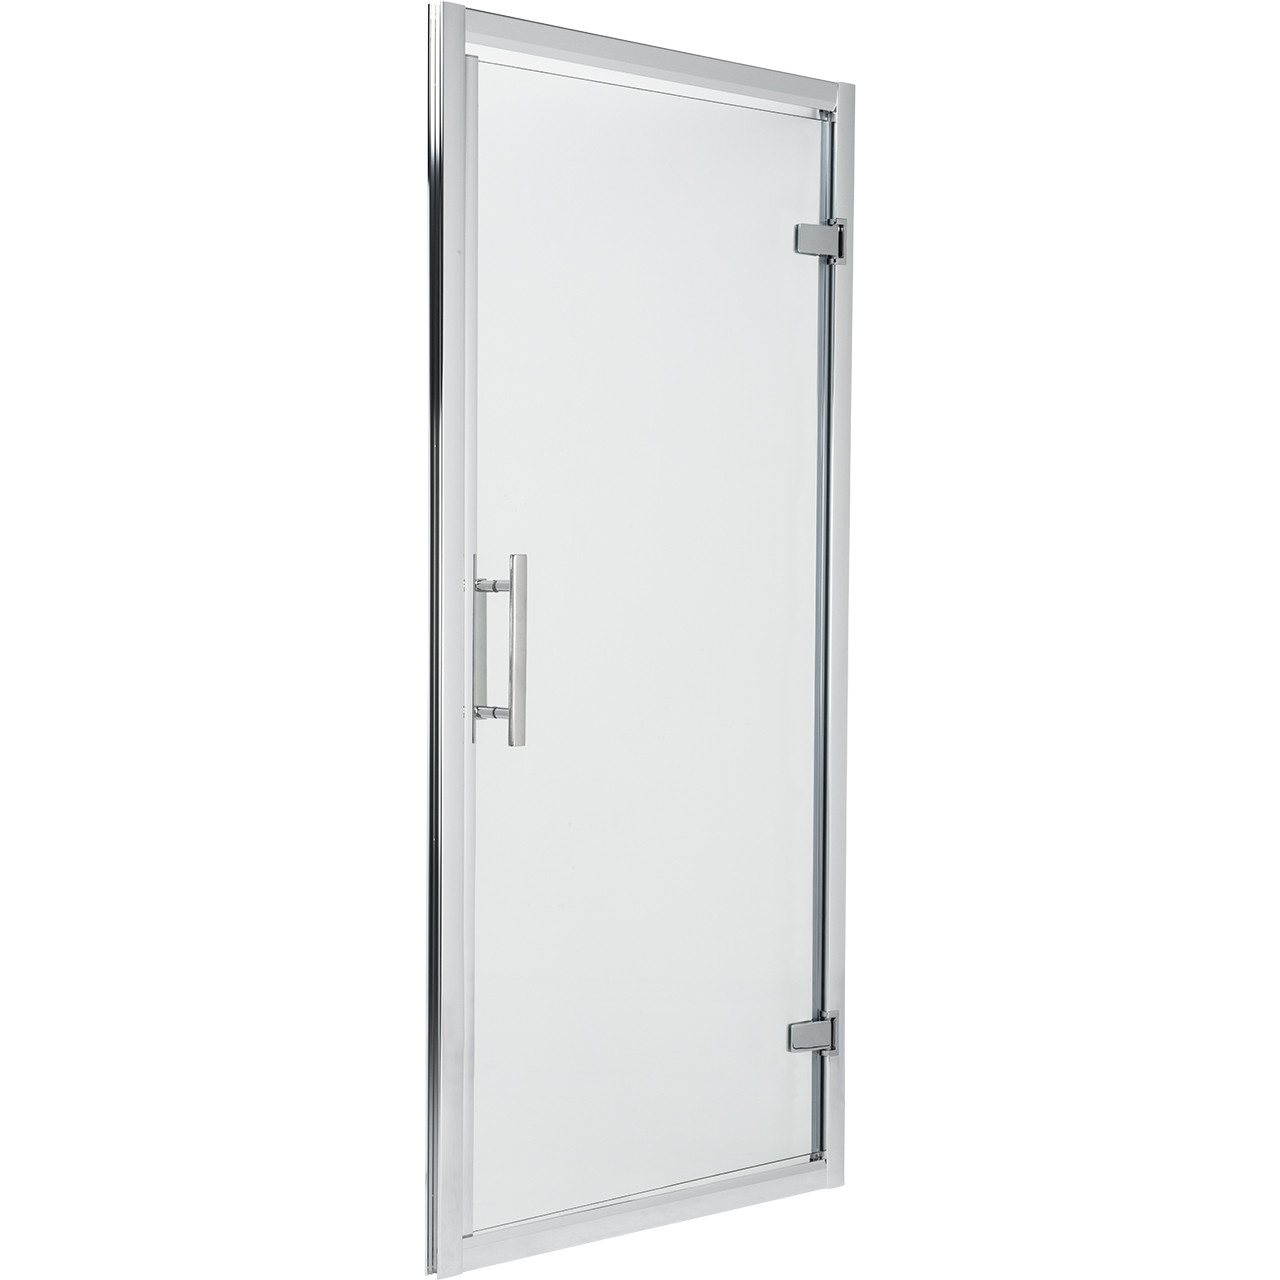 Series 8 Plus Hinged Shower Door 800mm